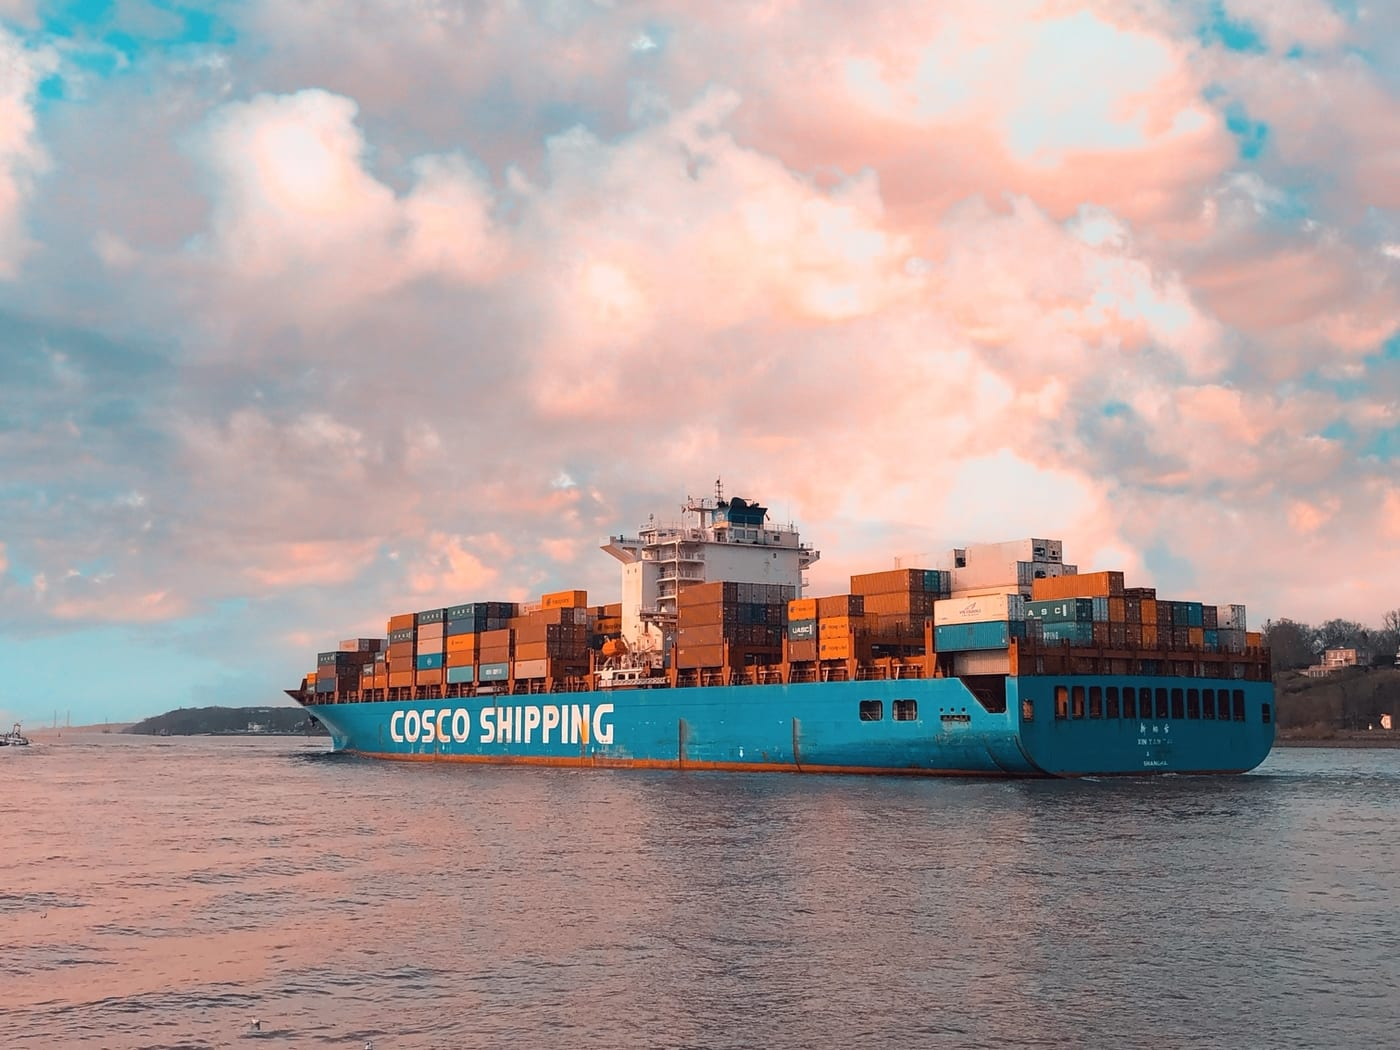 An image of a cargo ship underneath a partially cloudy pink evening sky by @snygo on unsplash.